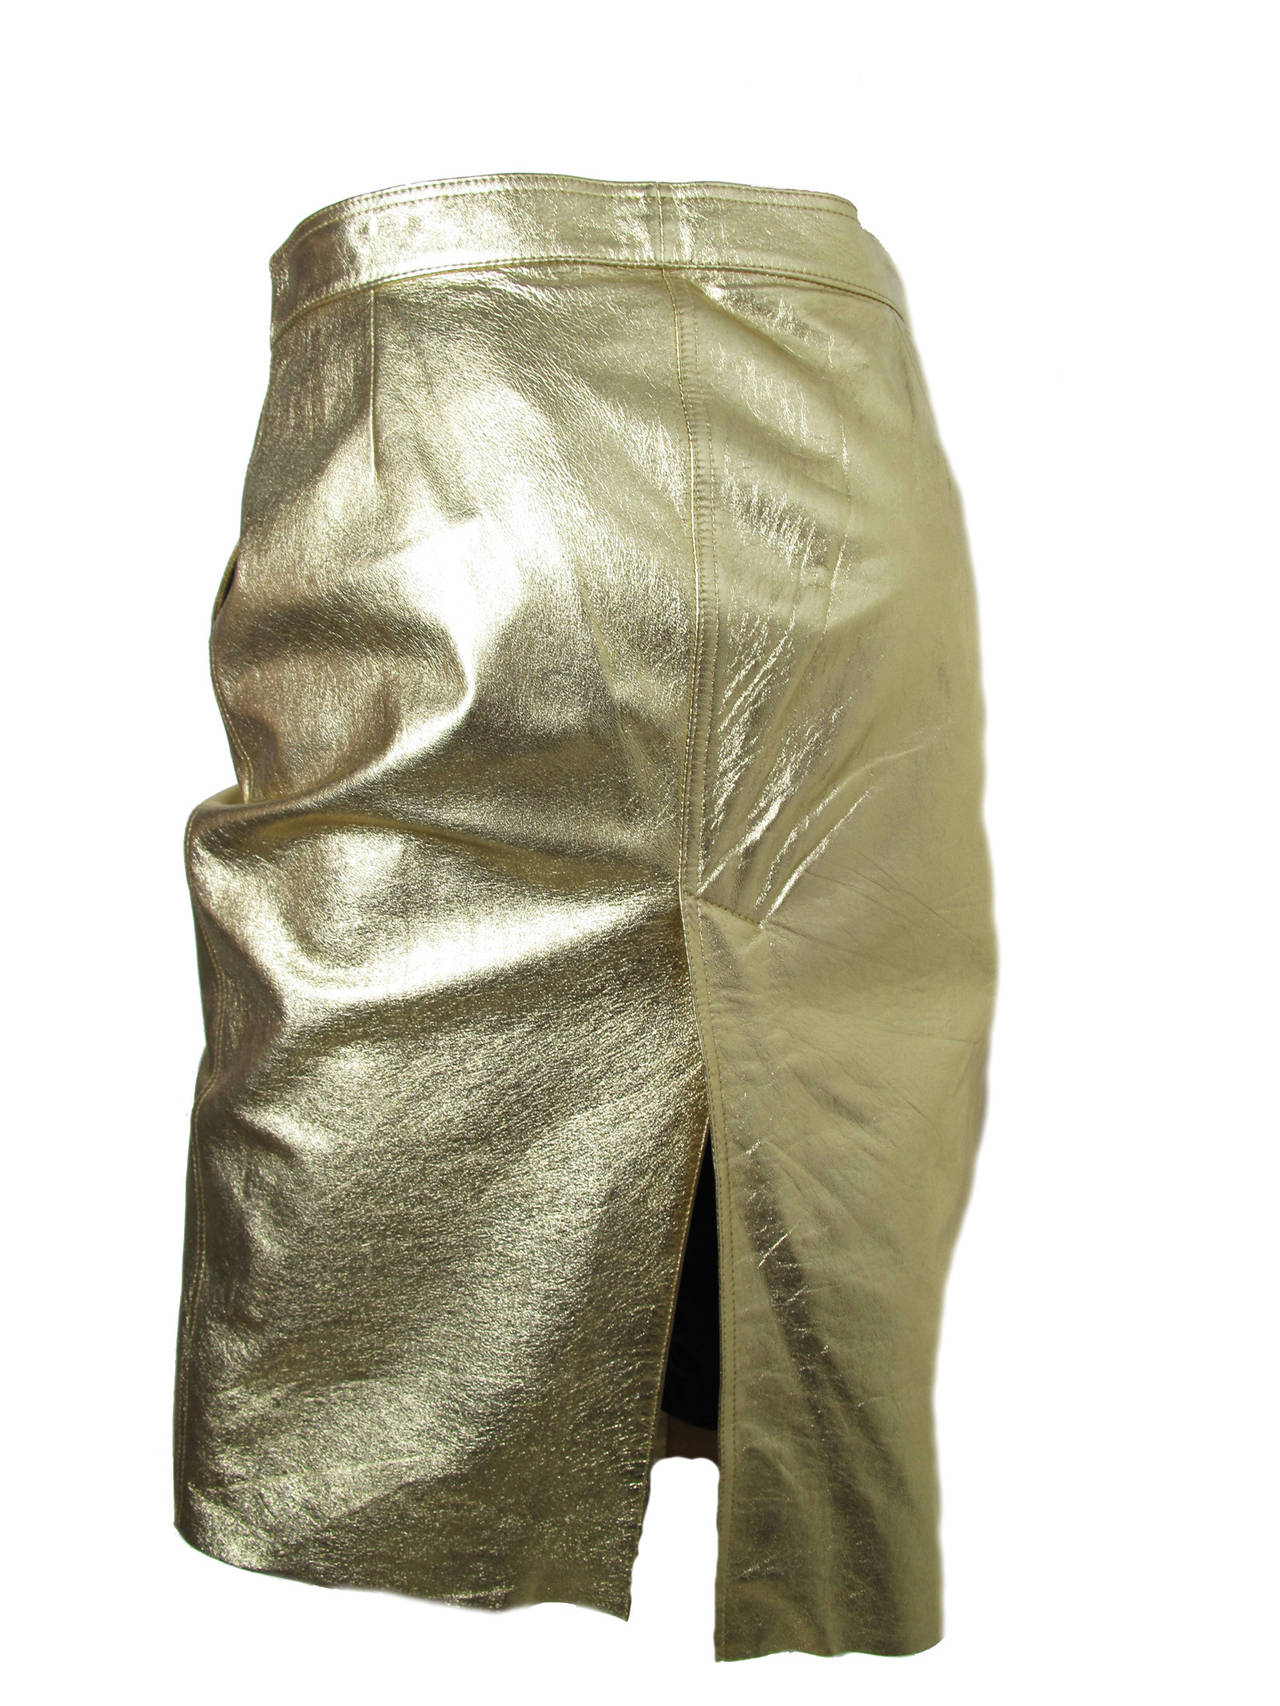 Moschino Gold Metallic Leather Skirt In Excellent Condition For Sale In Austin, TX